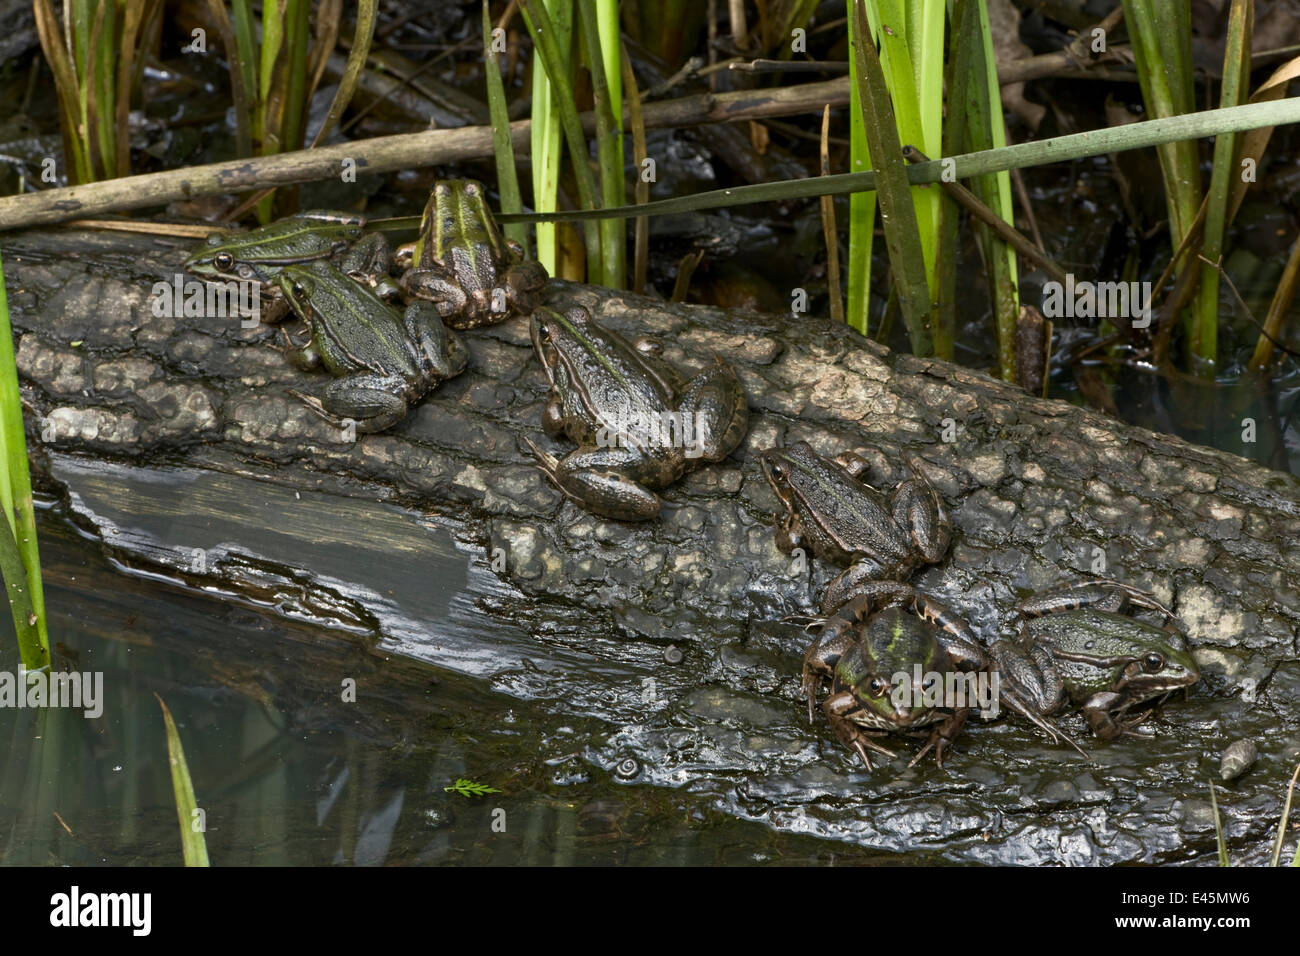 Common european frogs (Pelophylax kl. esculentus) the hybrid of the Pool frog (Pelophylax lessonae) and the Marsh - Stock Image